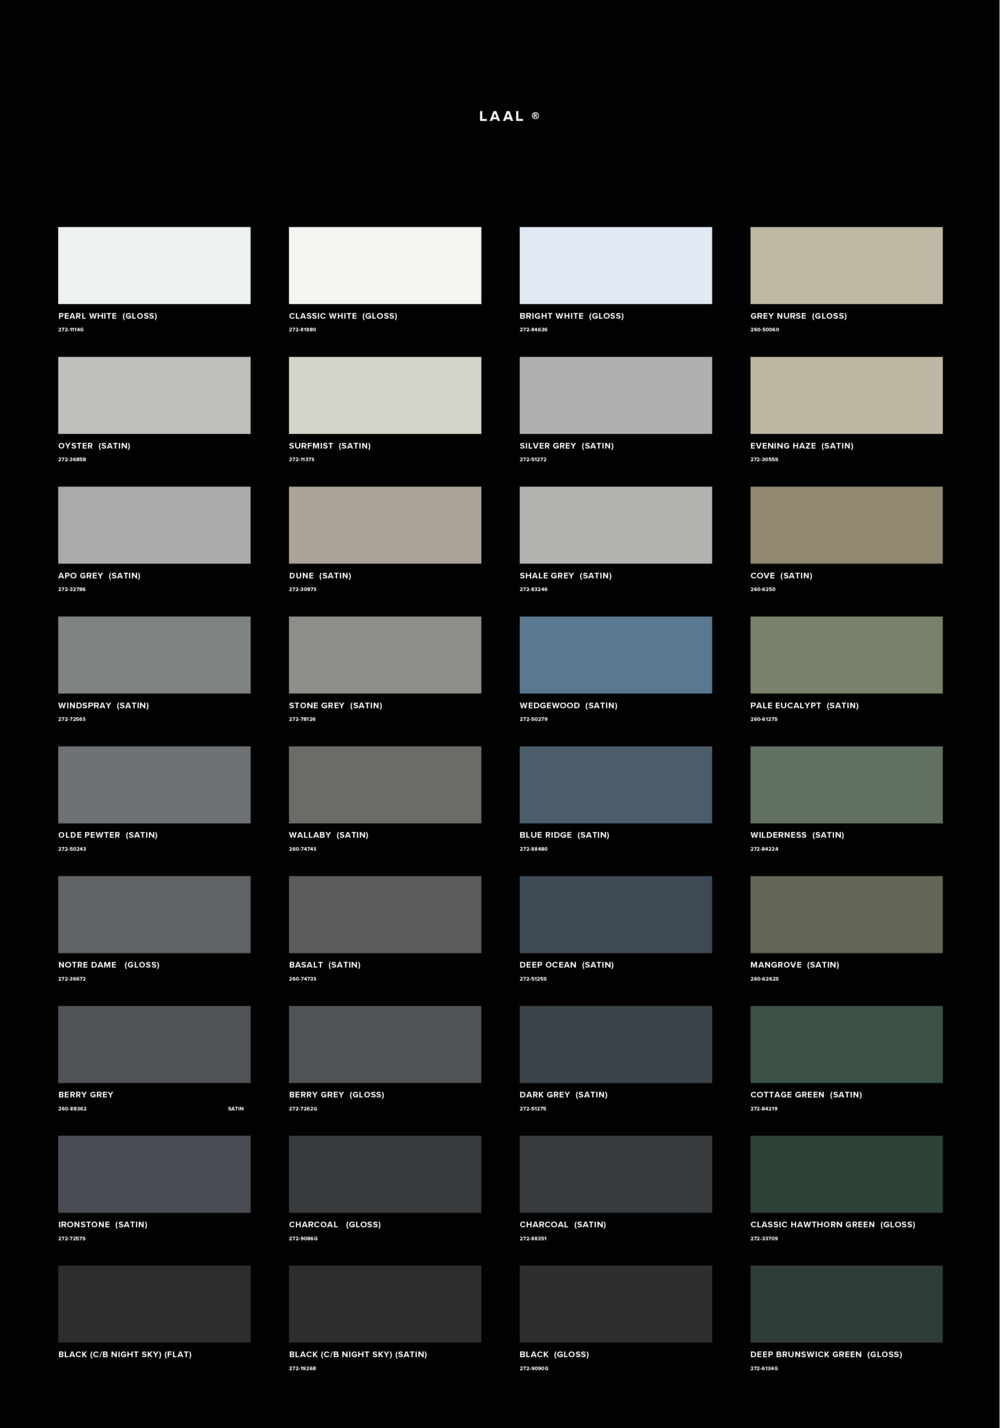 DULUXcolourchart-05.png